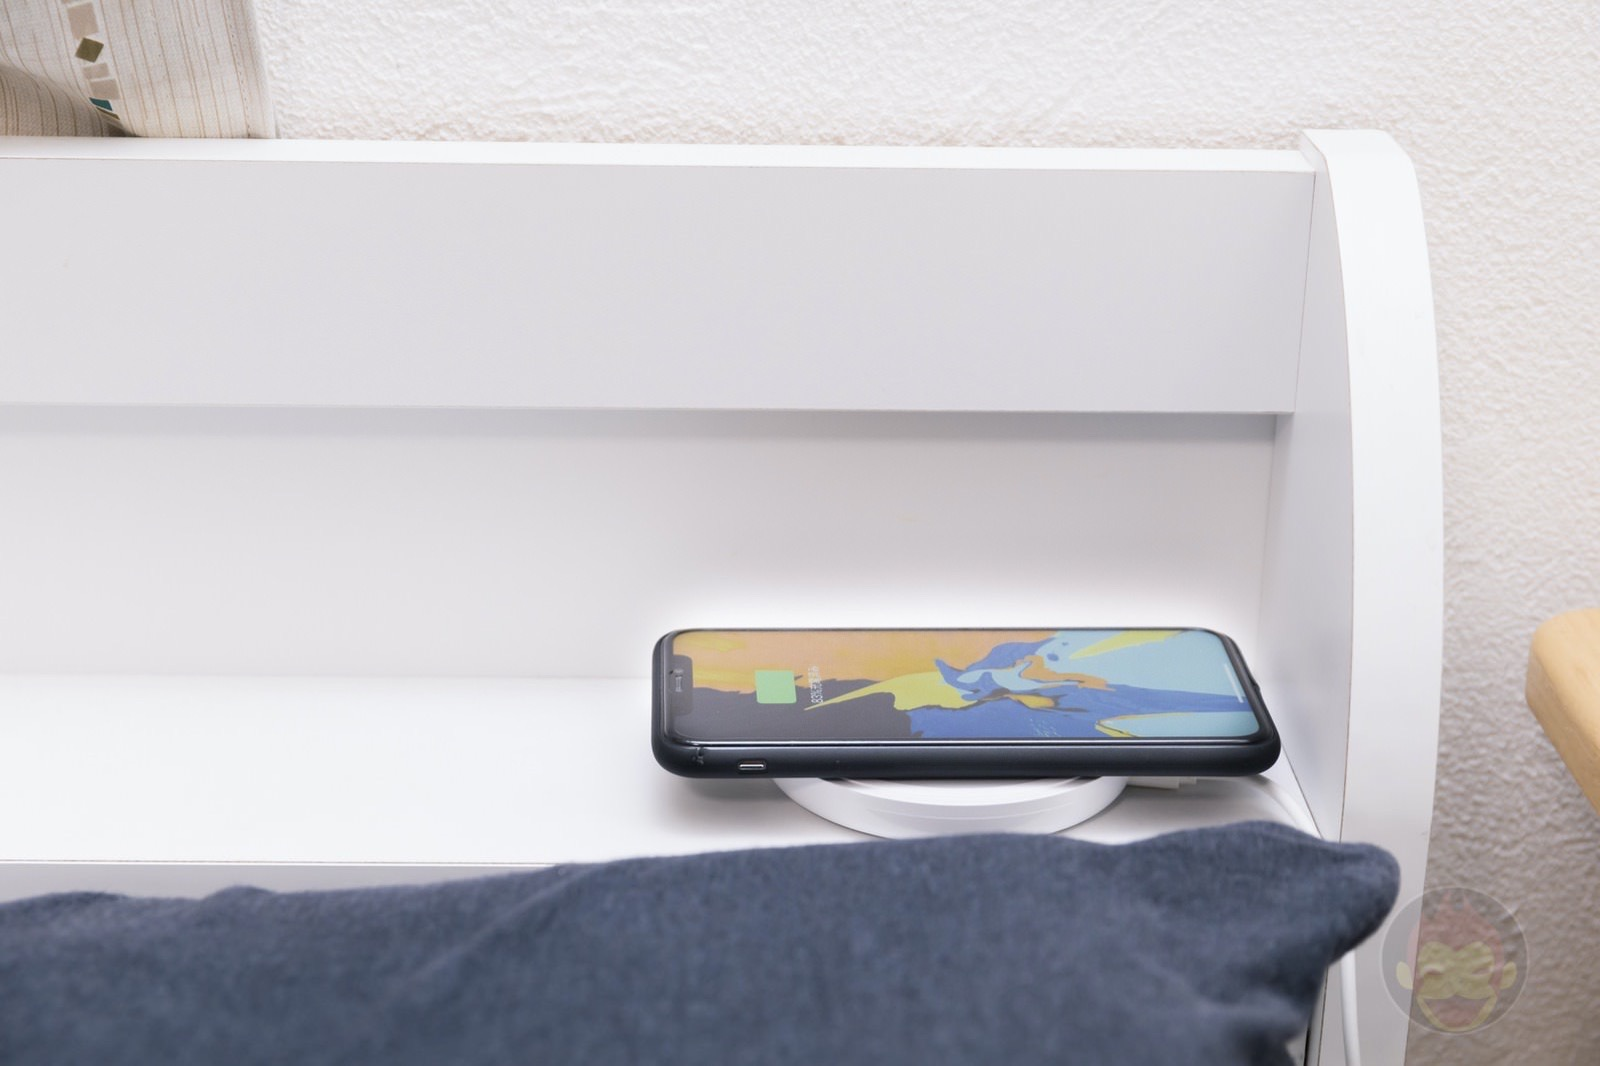 Using-Belkin-Wireless-Charger-to-have-a-better-charging-life-30.jpg